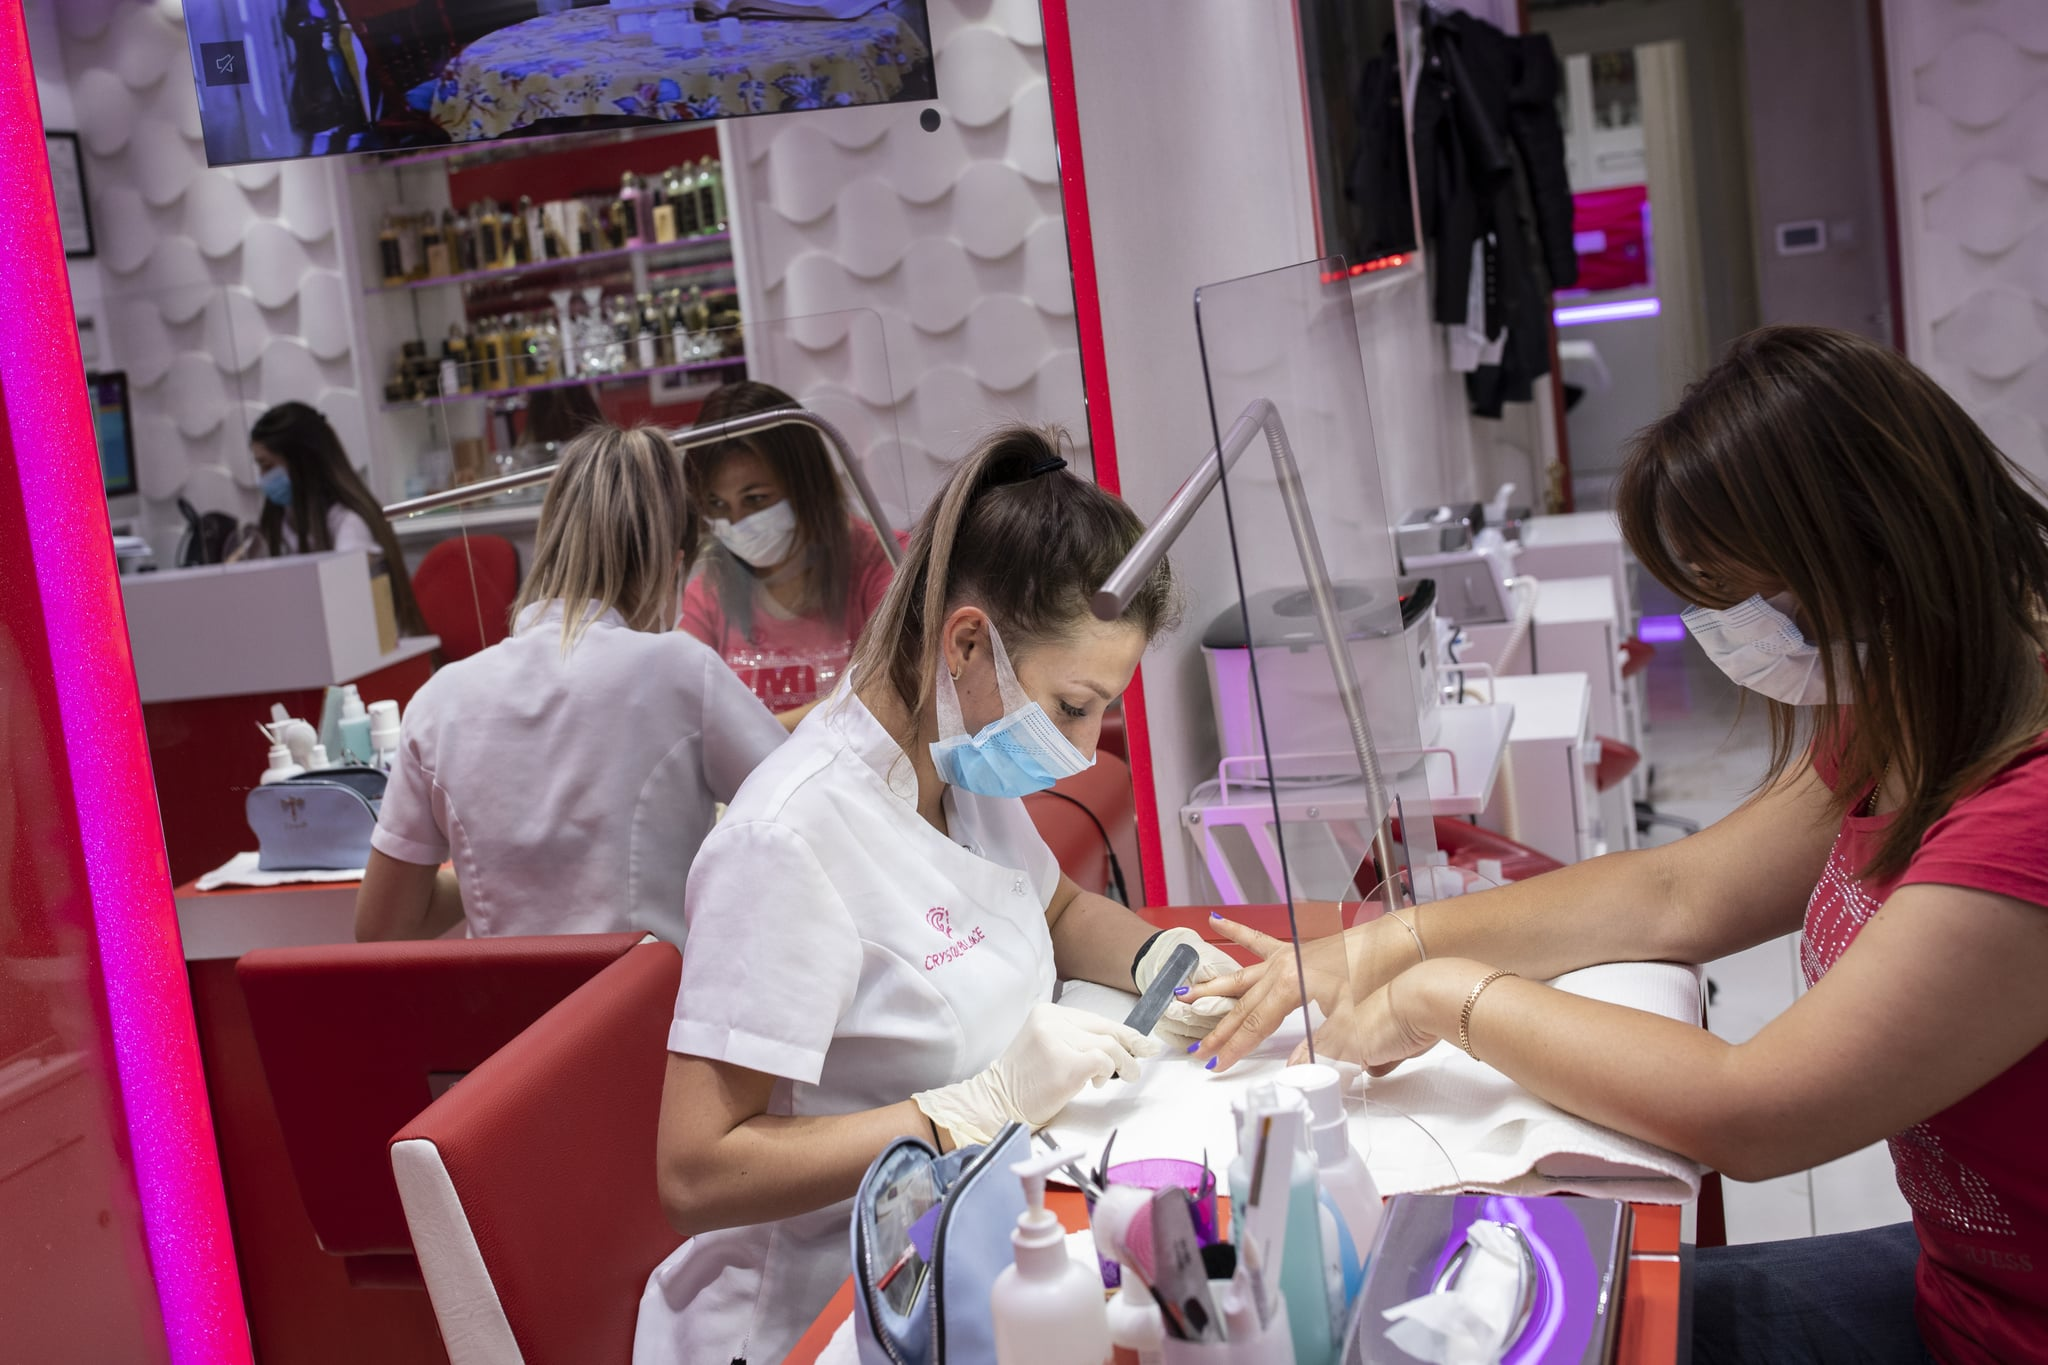 LONDON, ENGLAND - JULY 13: A customer has her nails done at the Crystal Palace Spa in Marylebone on July 13, 2020 in London, England. Nail salons, tattoo parlors and spas are among the businesses allowed to reopen today in England as the government eases the restrictions meant to curb the spread of Covid-19. (Photo by Dan Kitwood/Getty Images)